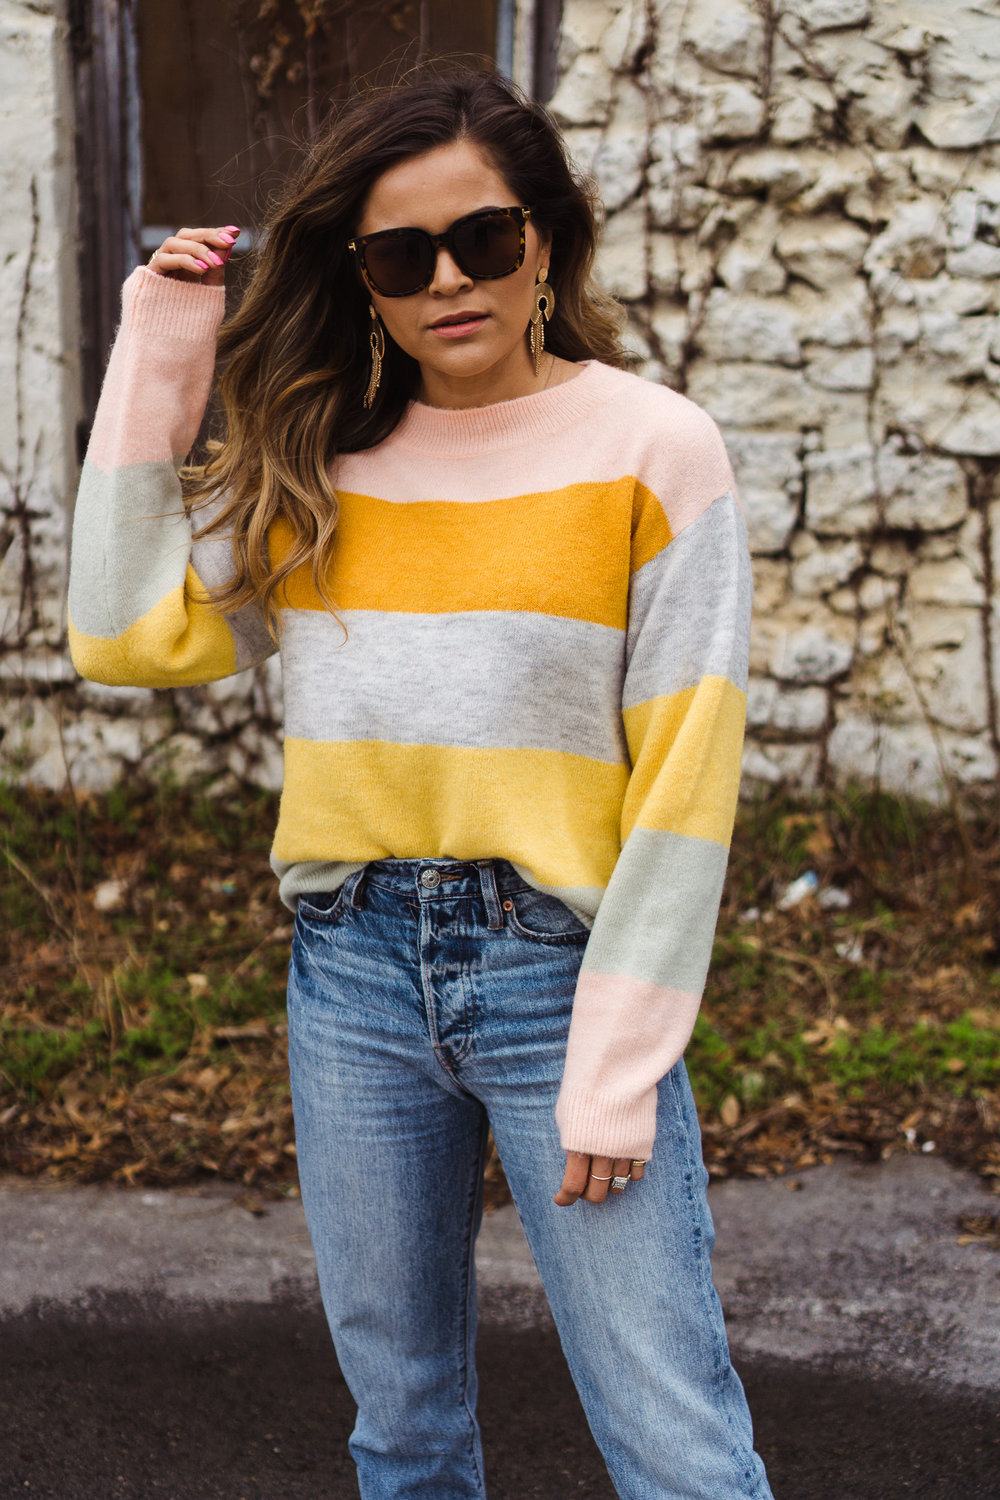 Spring Feels - with a colorful sweater